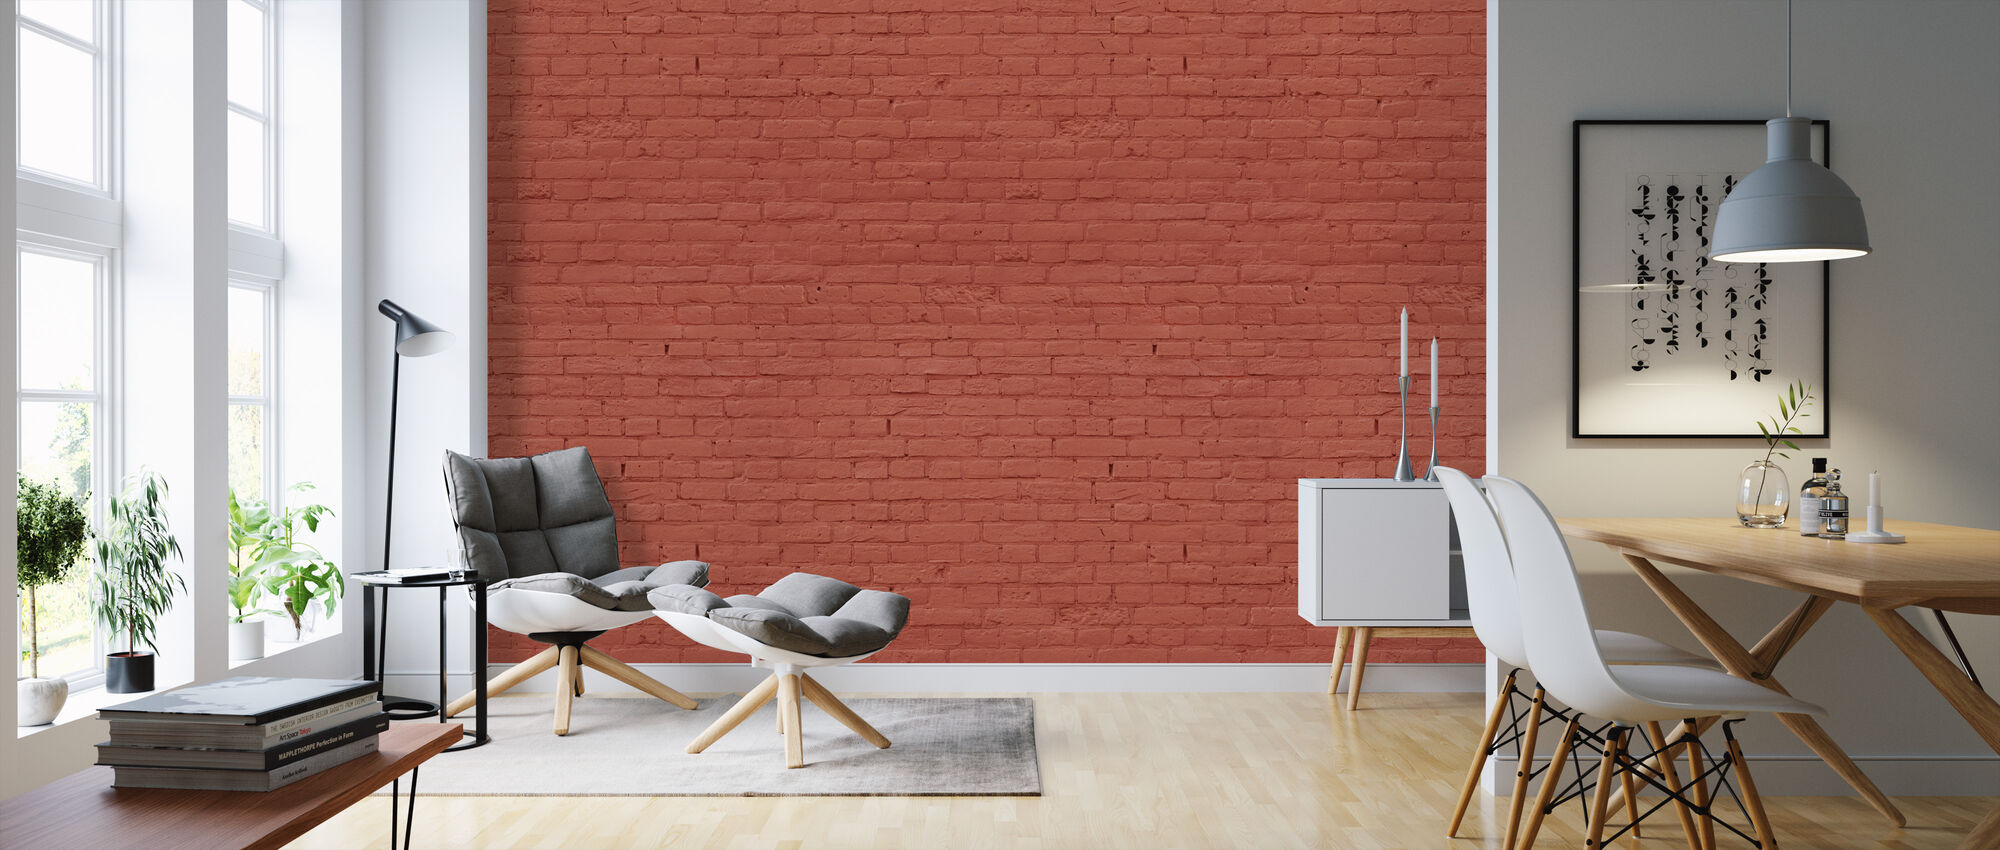 Red Colored Brick Wall - Wallpaper - Living Room